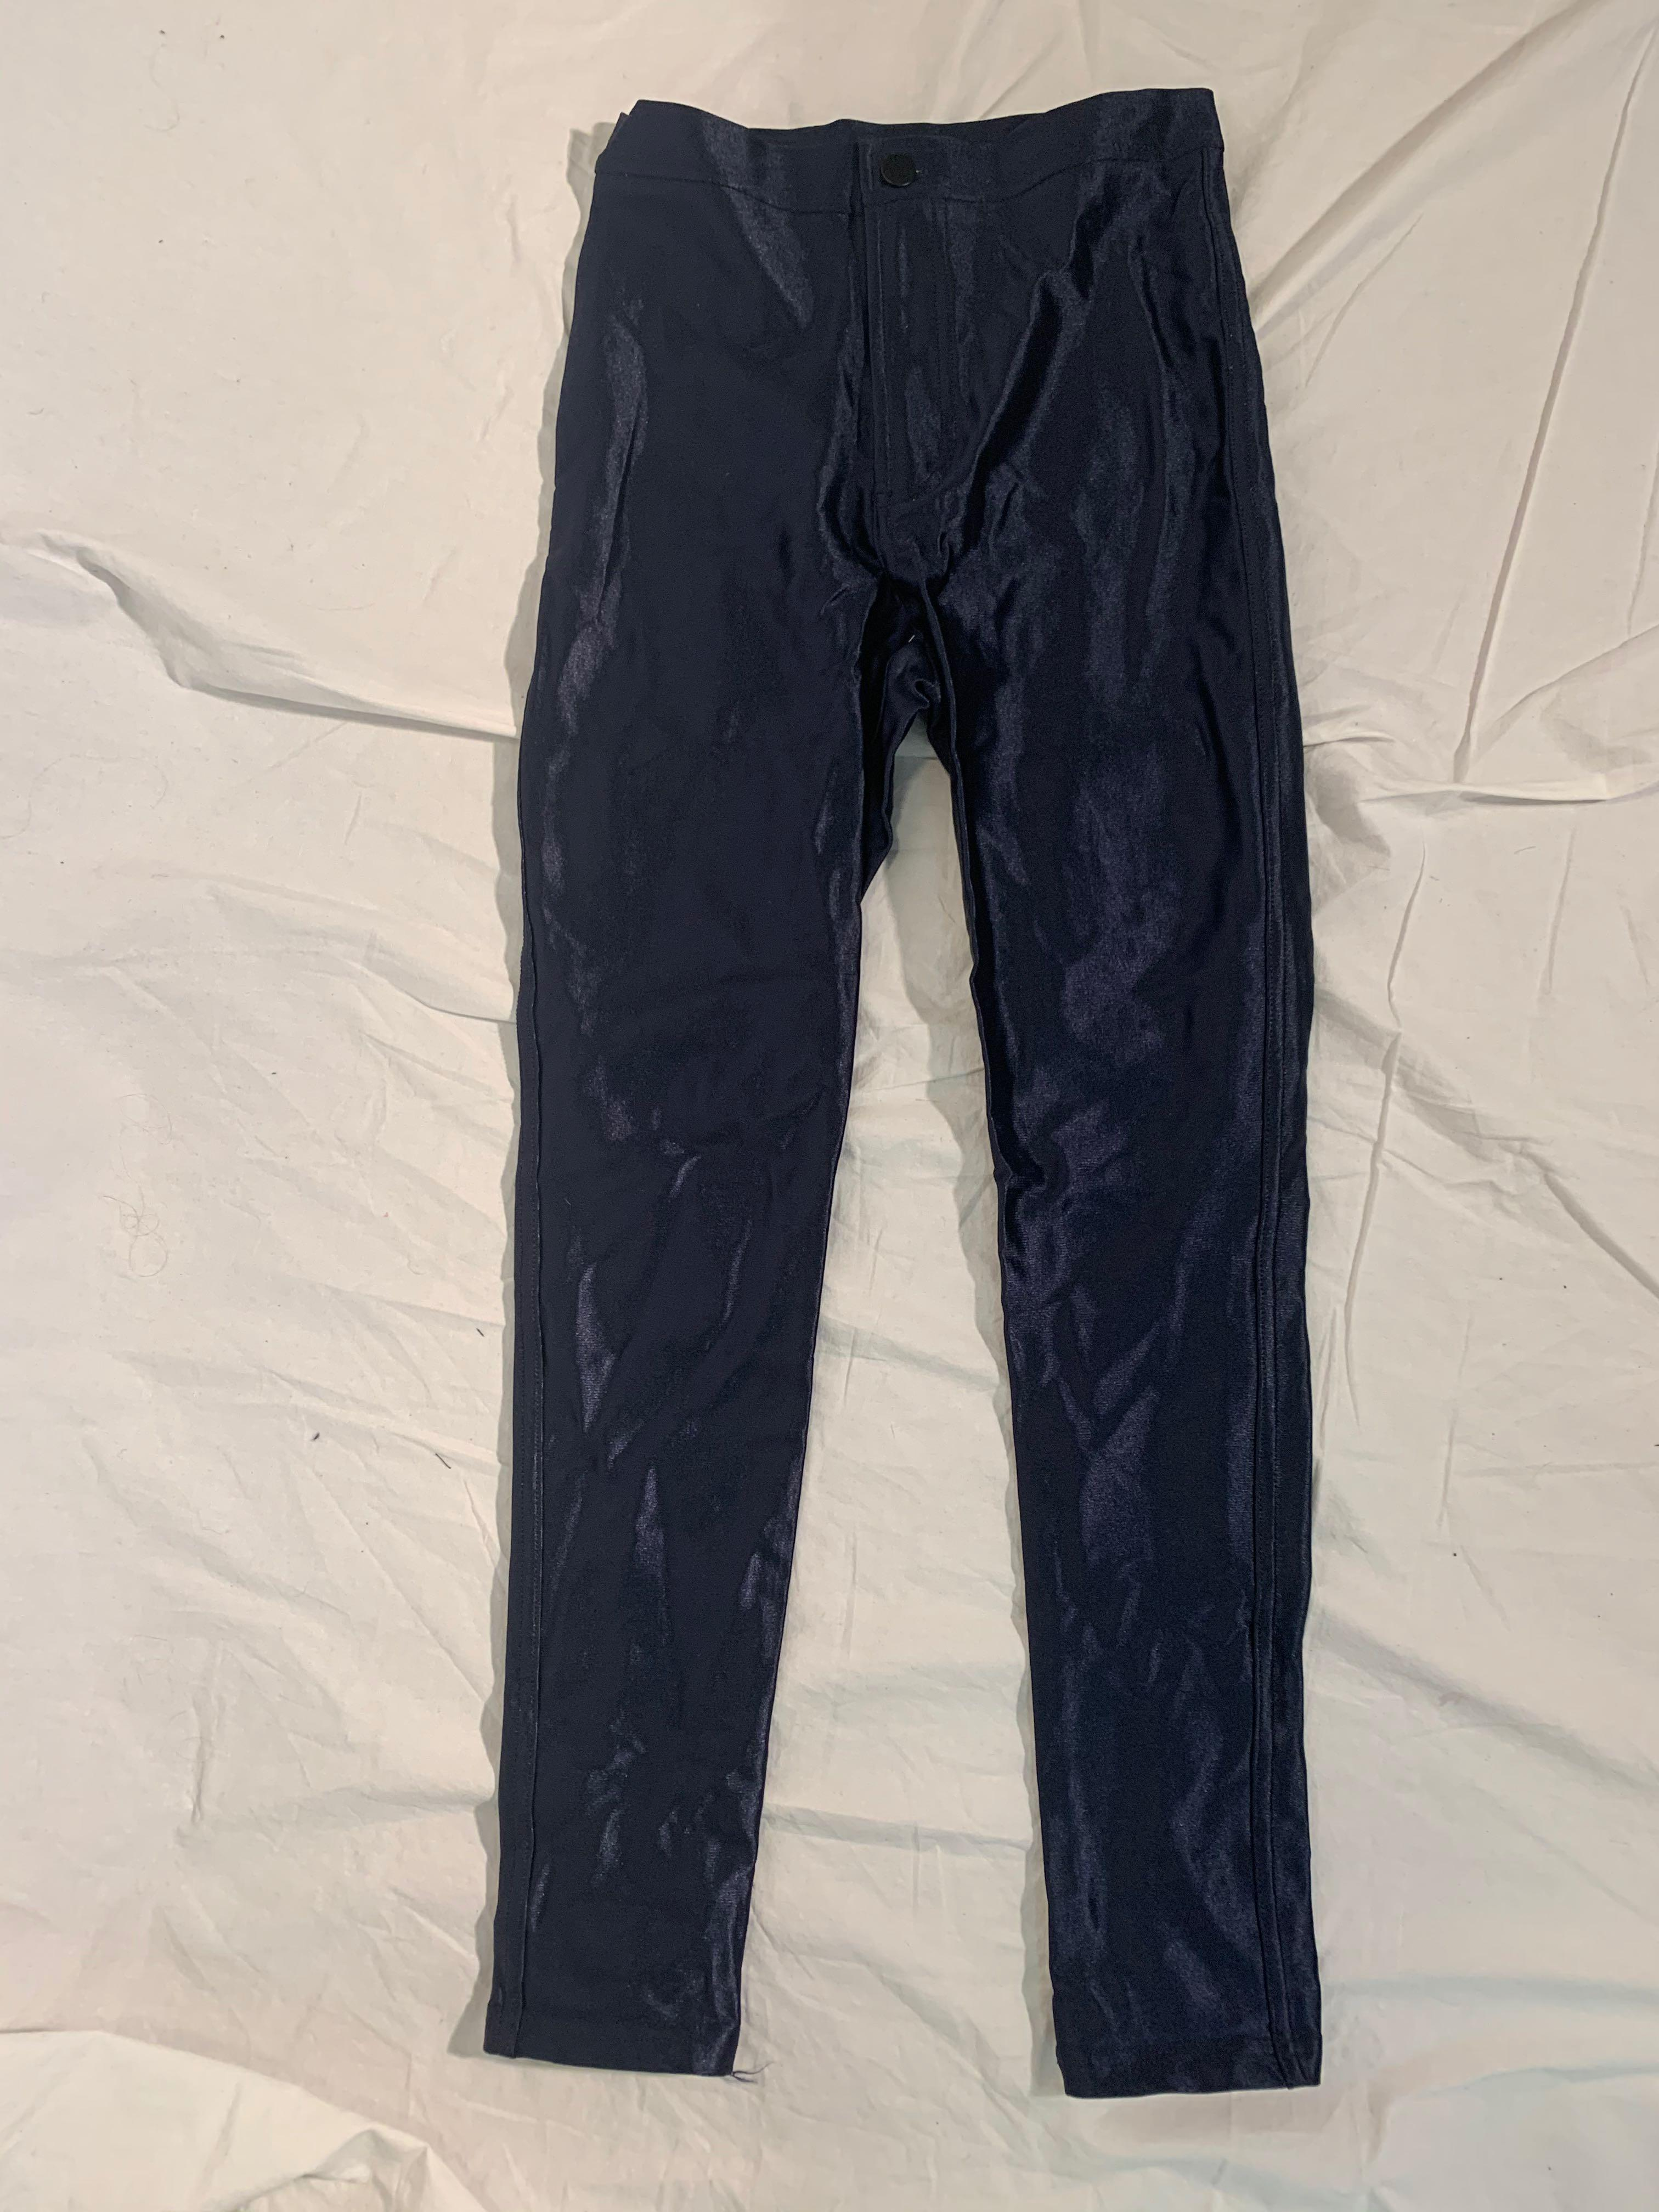 American Apparel disco pant - size s - like new